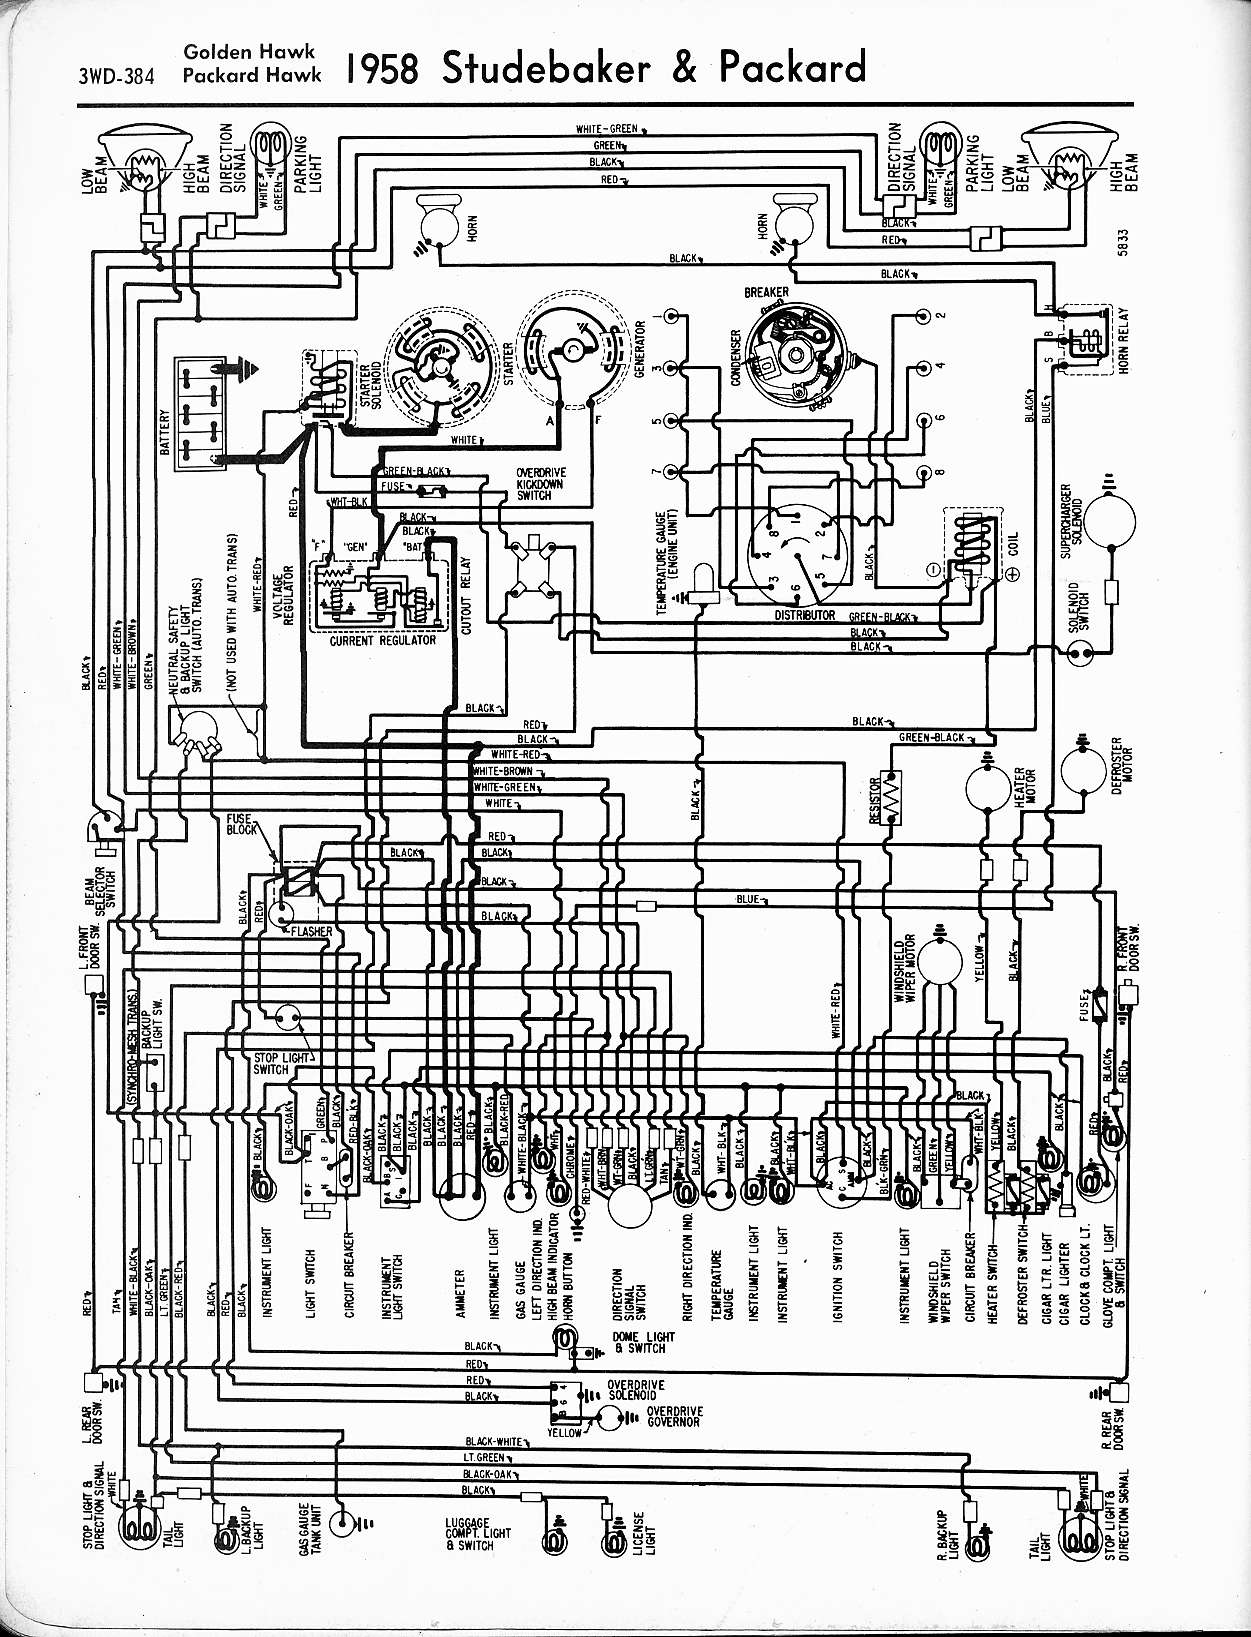 Wiring Diagram For 1962 Studebaker V8 Hawk Blog Wiring Diagram